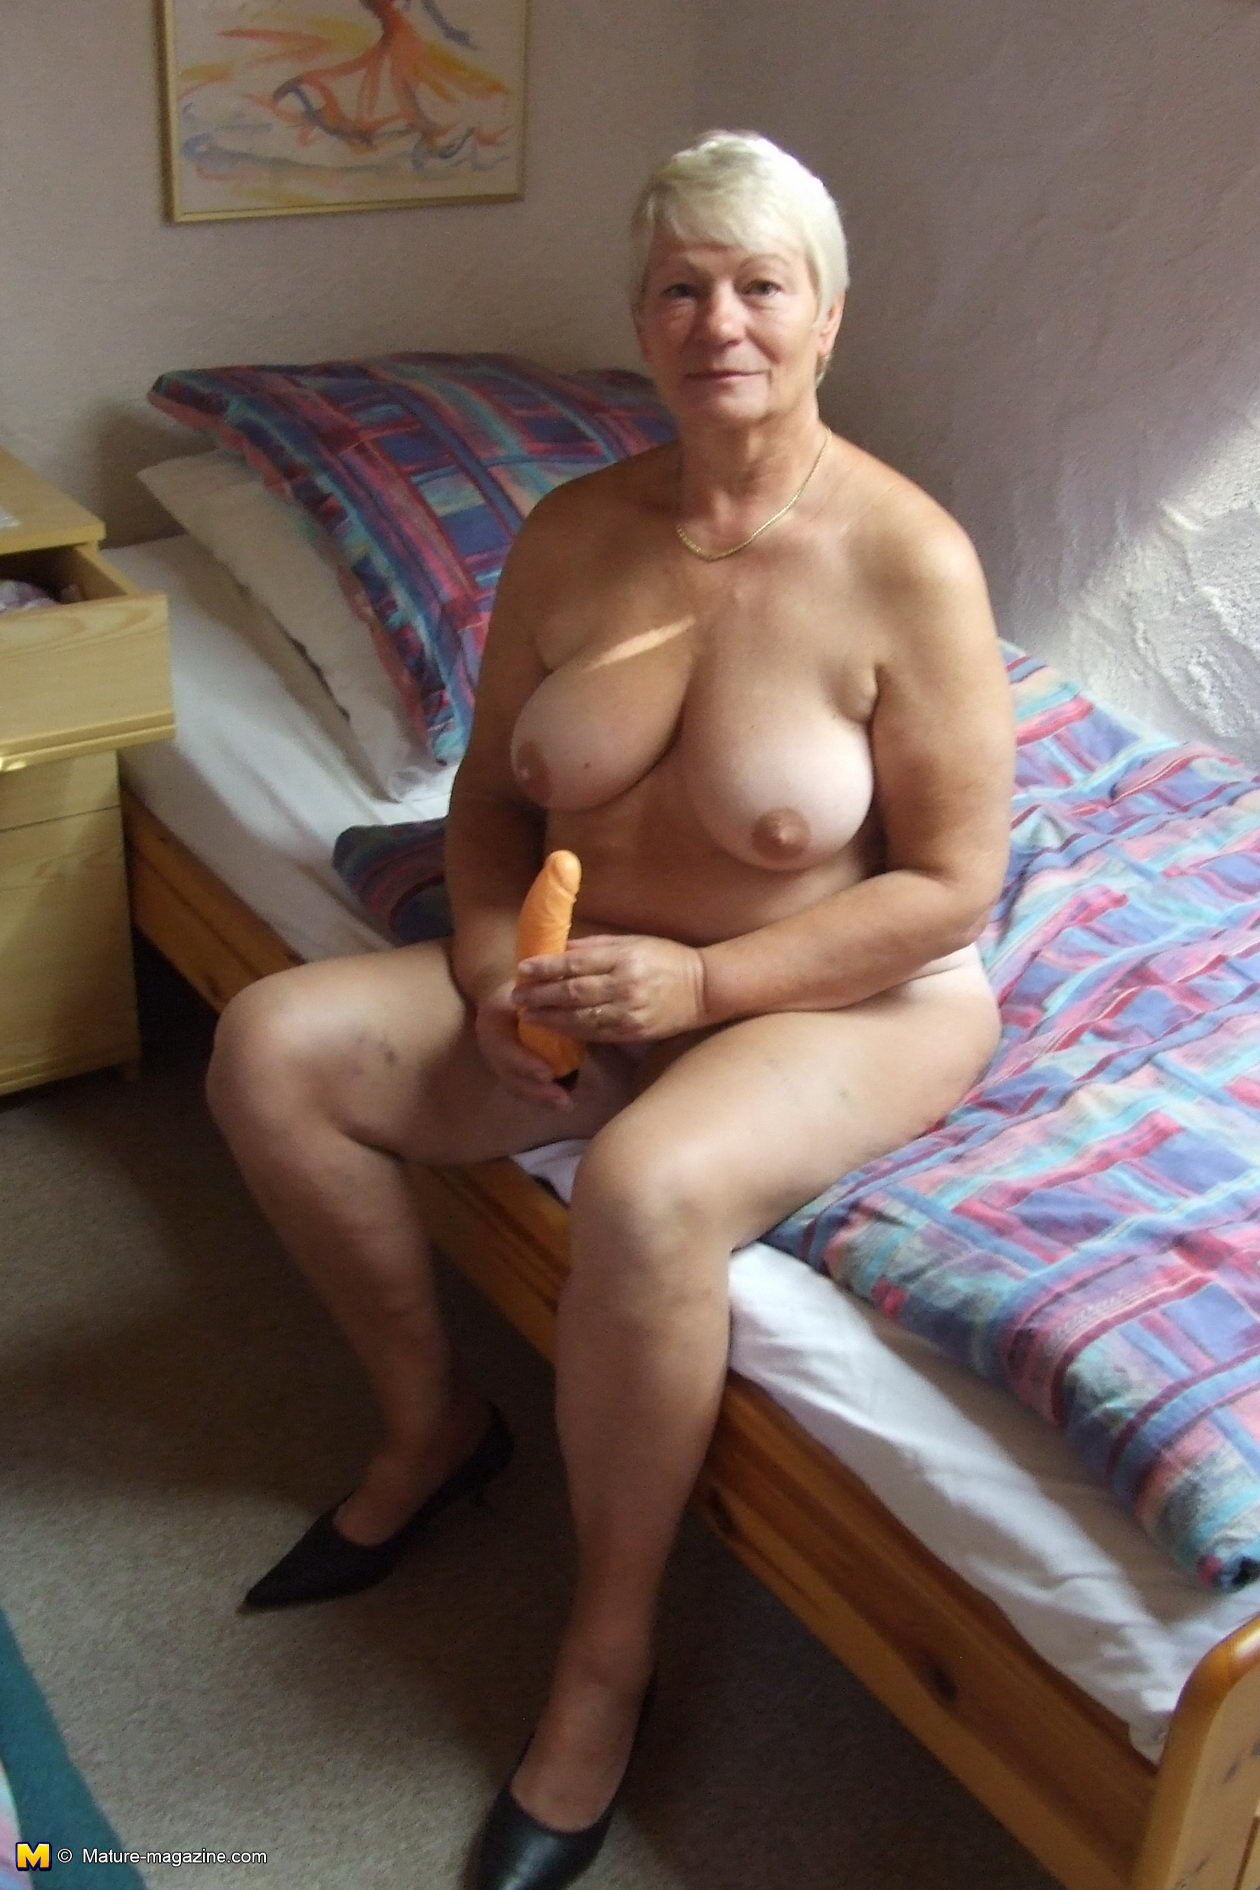 67 year old cougar creampied by her 30 year old cub 2